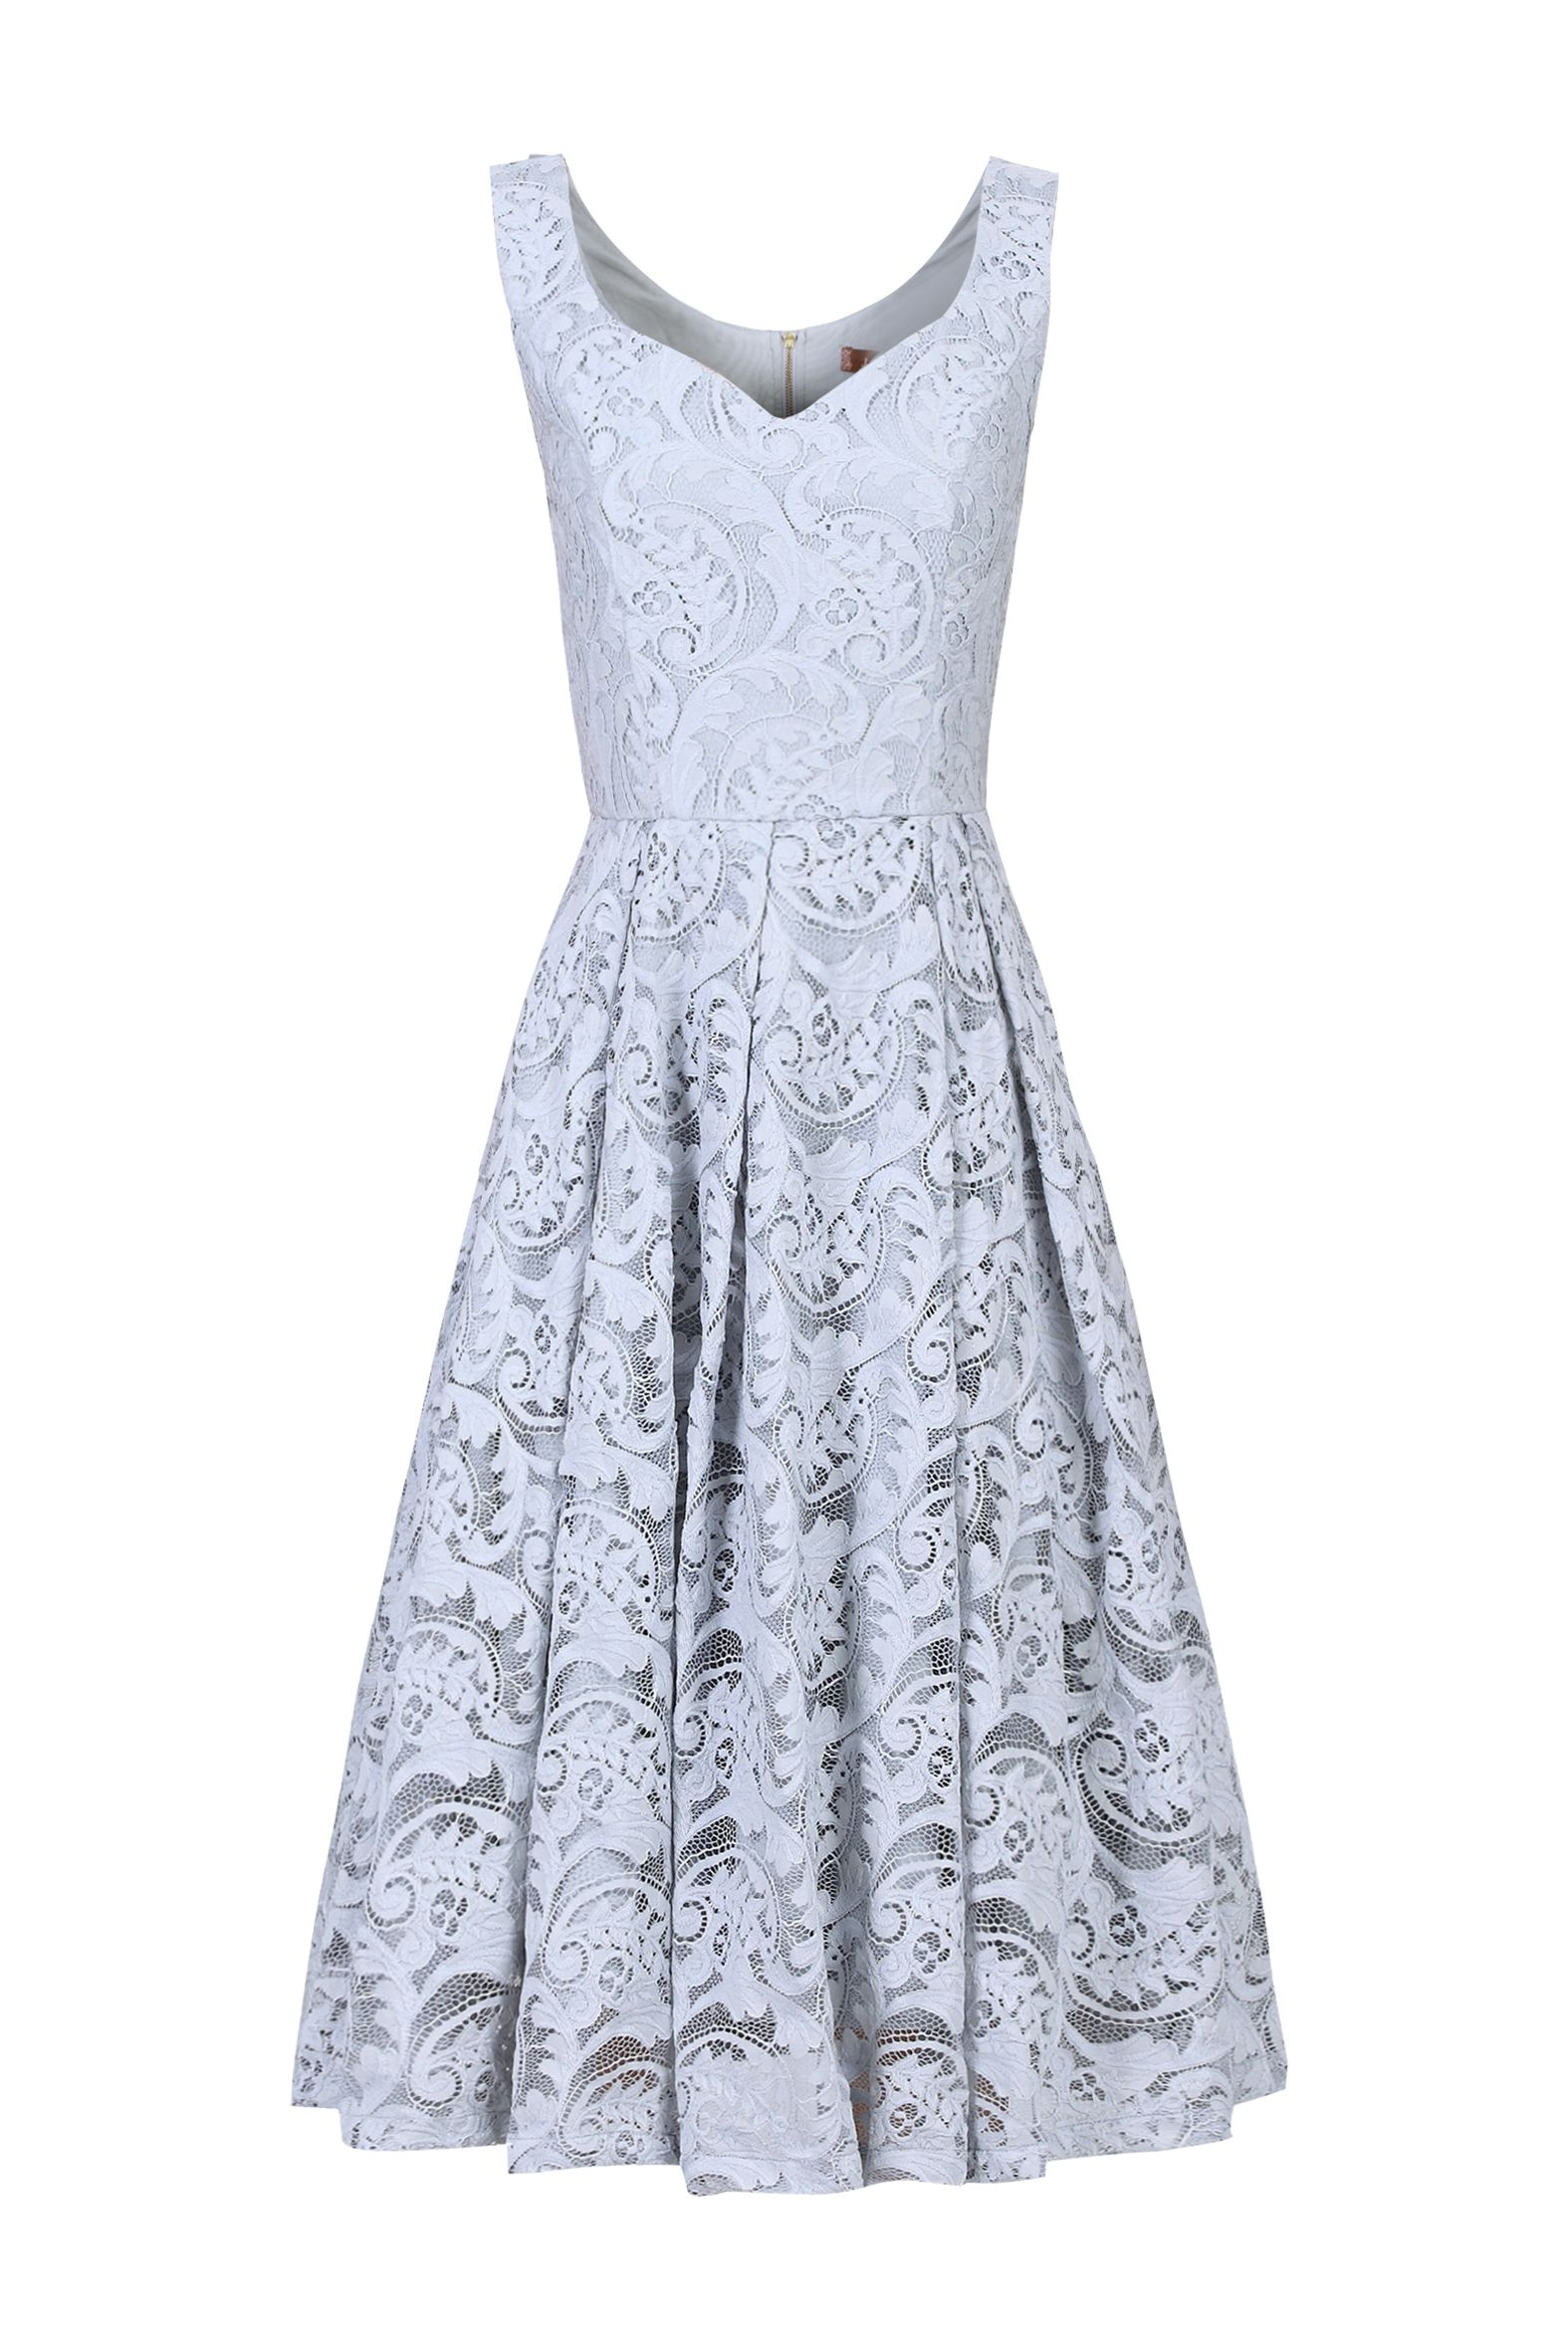 Jolie Moi Sweetheart Neck 50s Lace Dress, Grey